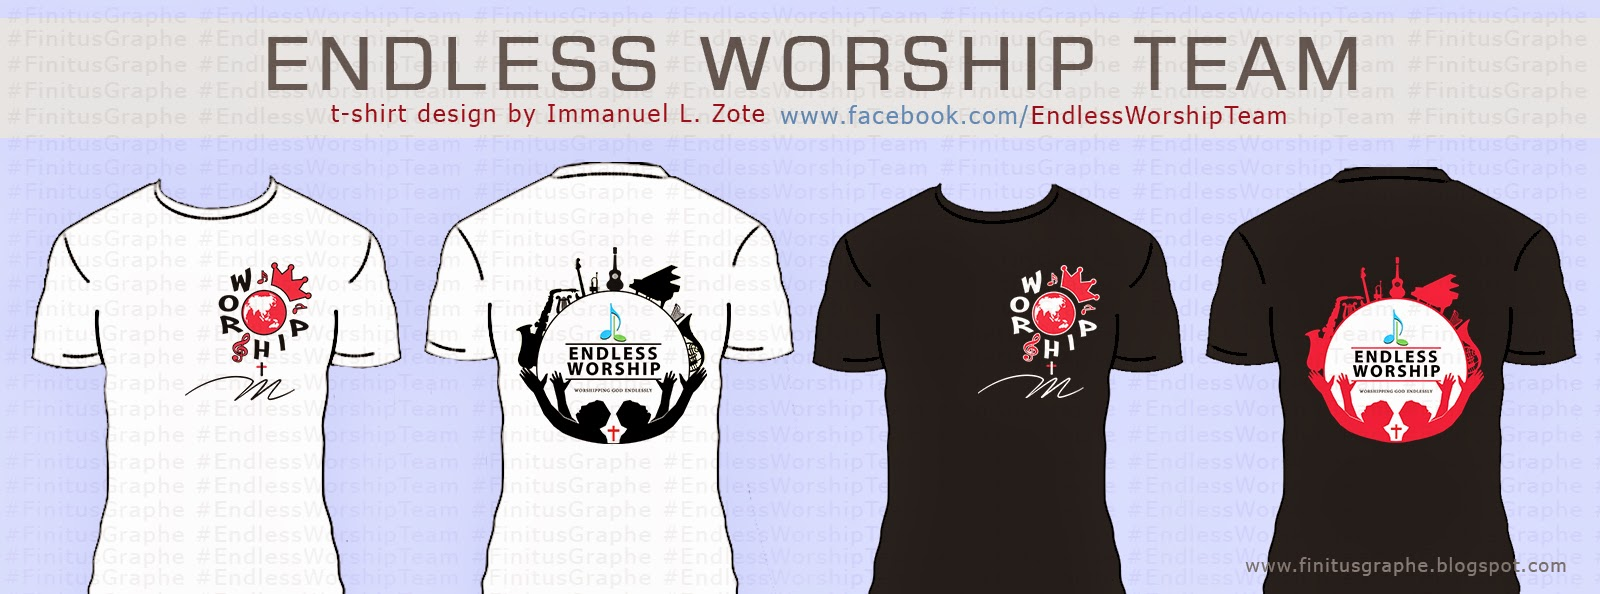 Me And Graphe Endless Worship T Shirt Design